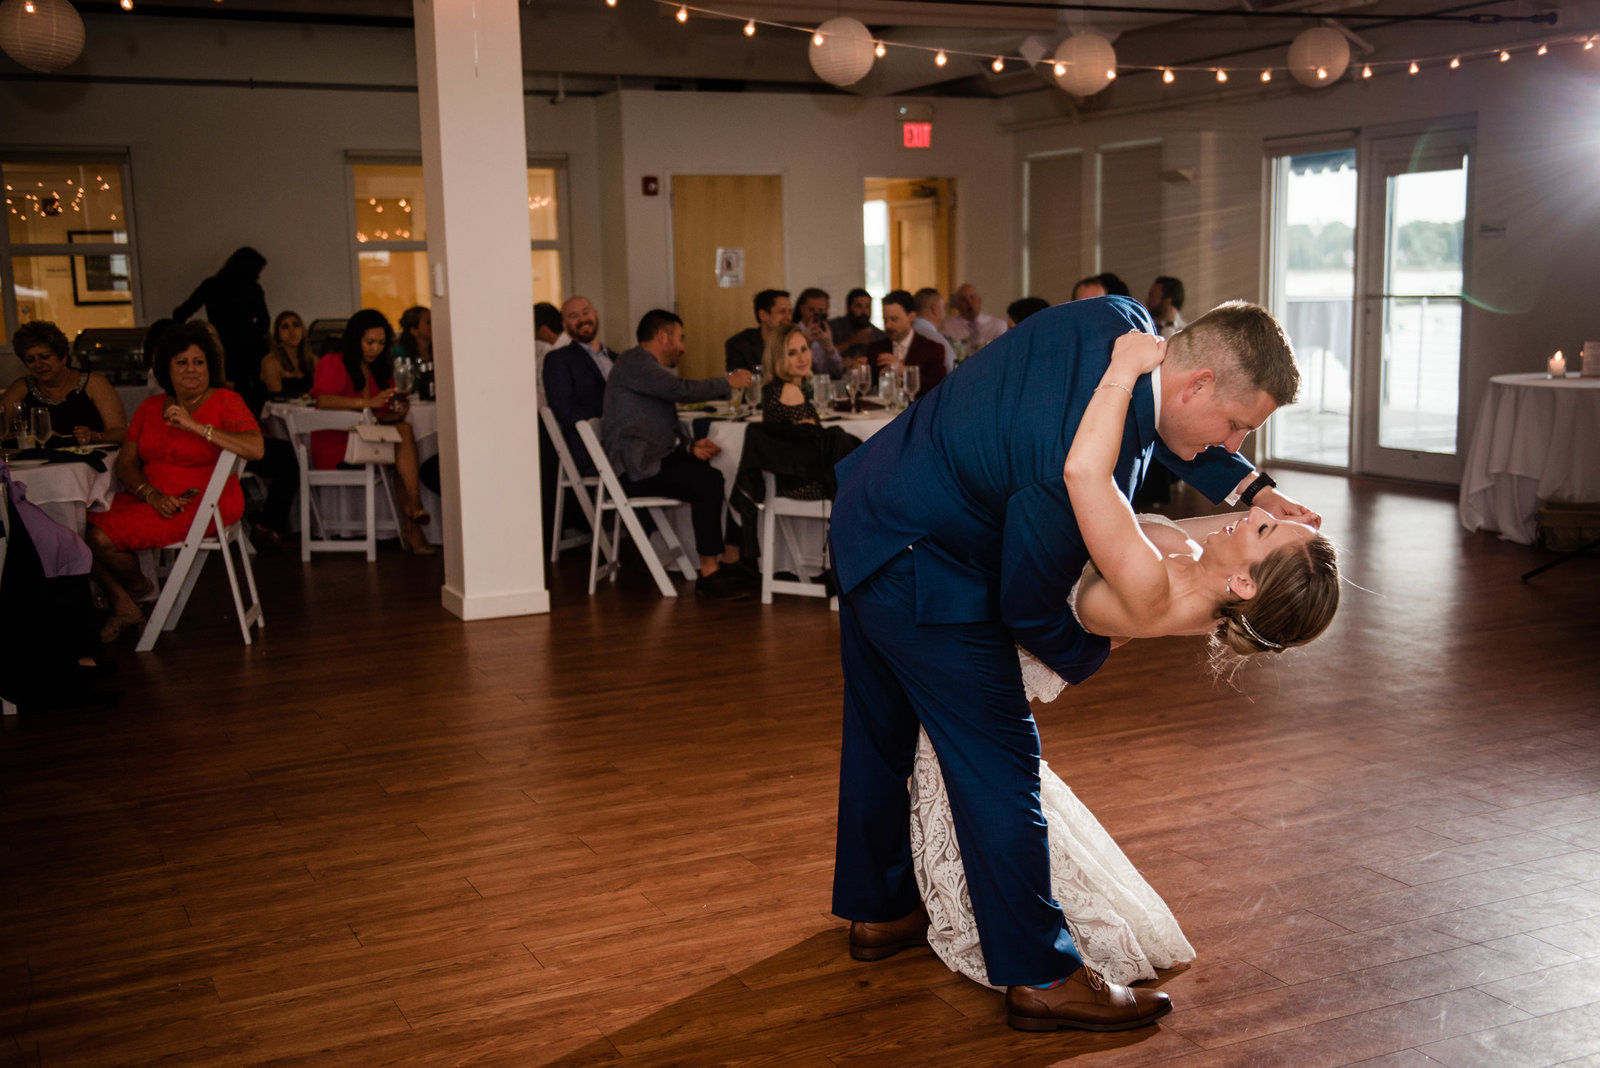 A couple shares their first dance and a dip at their duxbury bay maritime school wedding reception